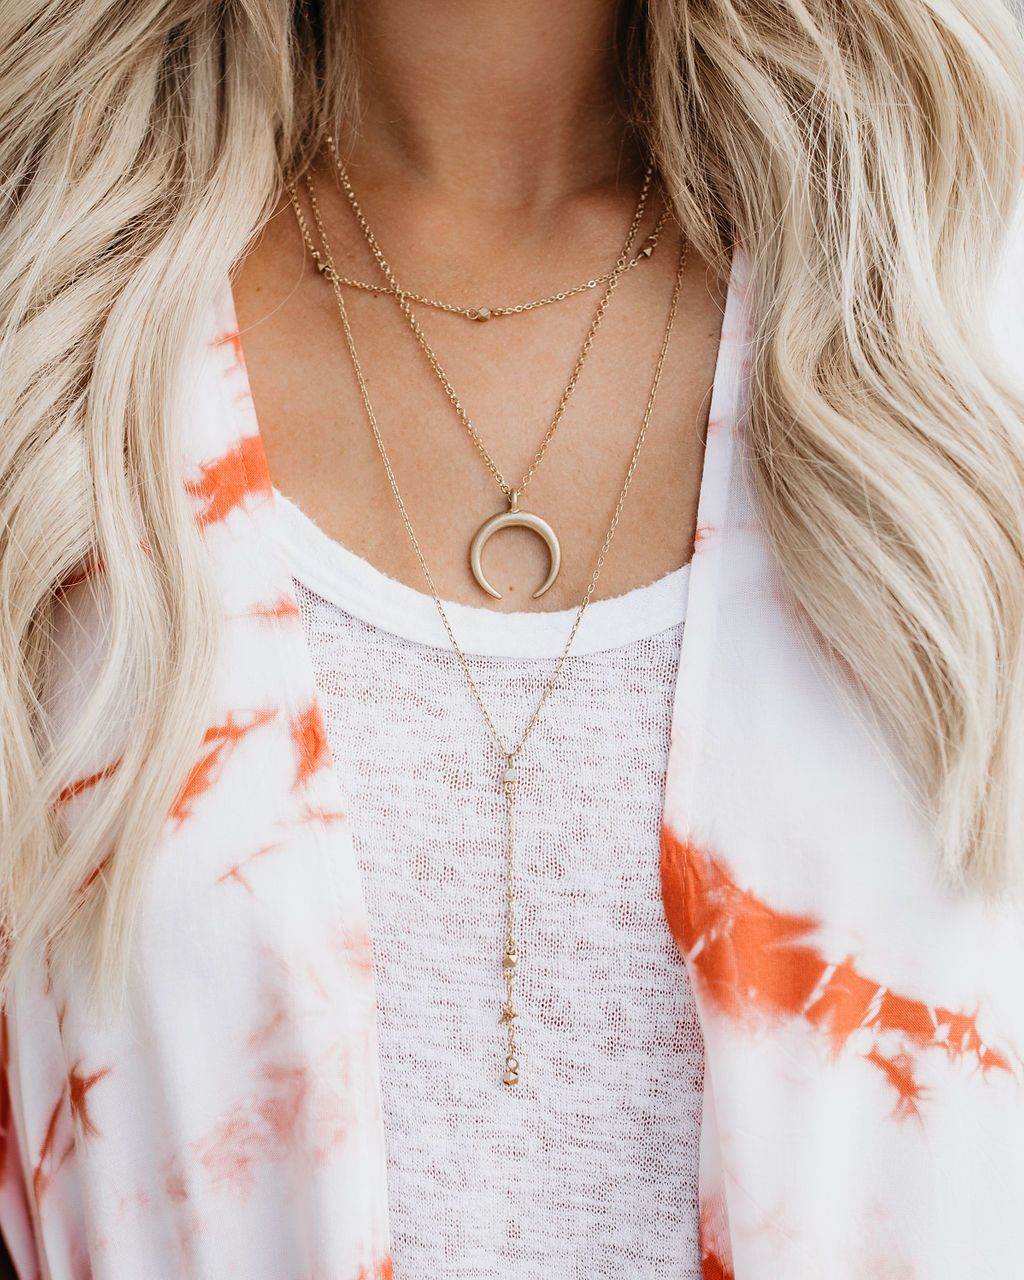 Celestial Layered Crescent Necklace in Gold